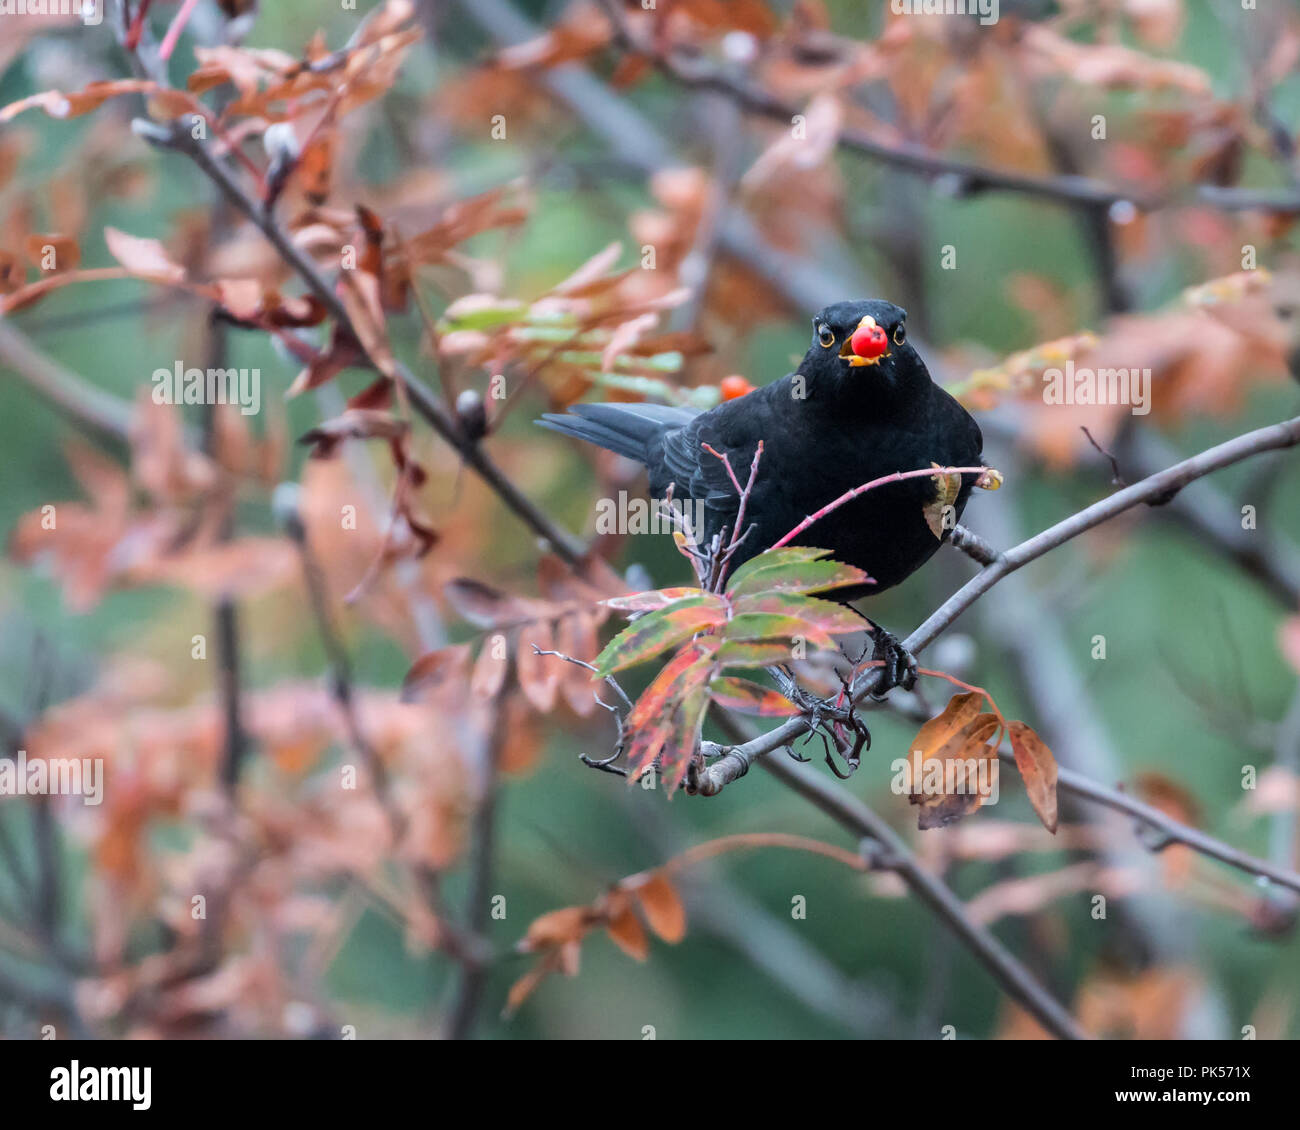 Adult male blackbird perched on a tree with a red berry in his beak - Stock Image